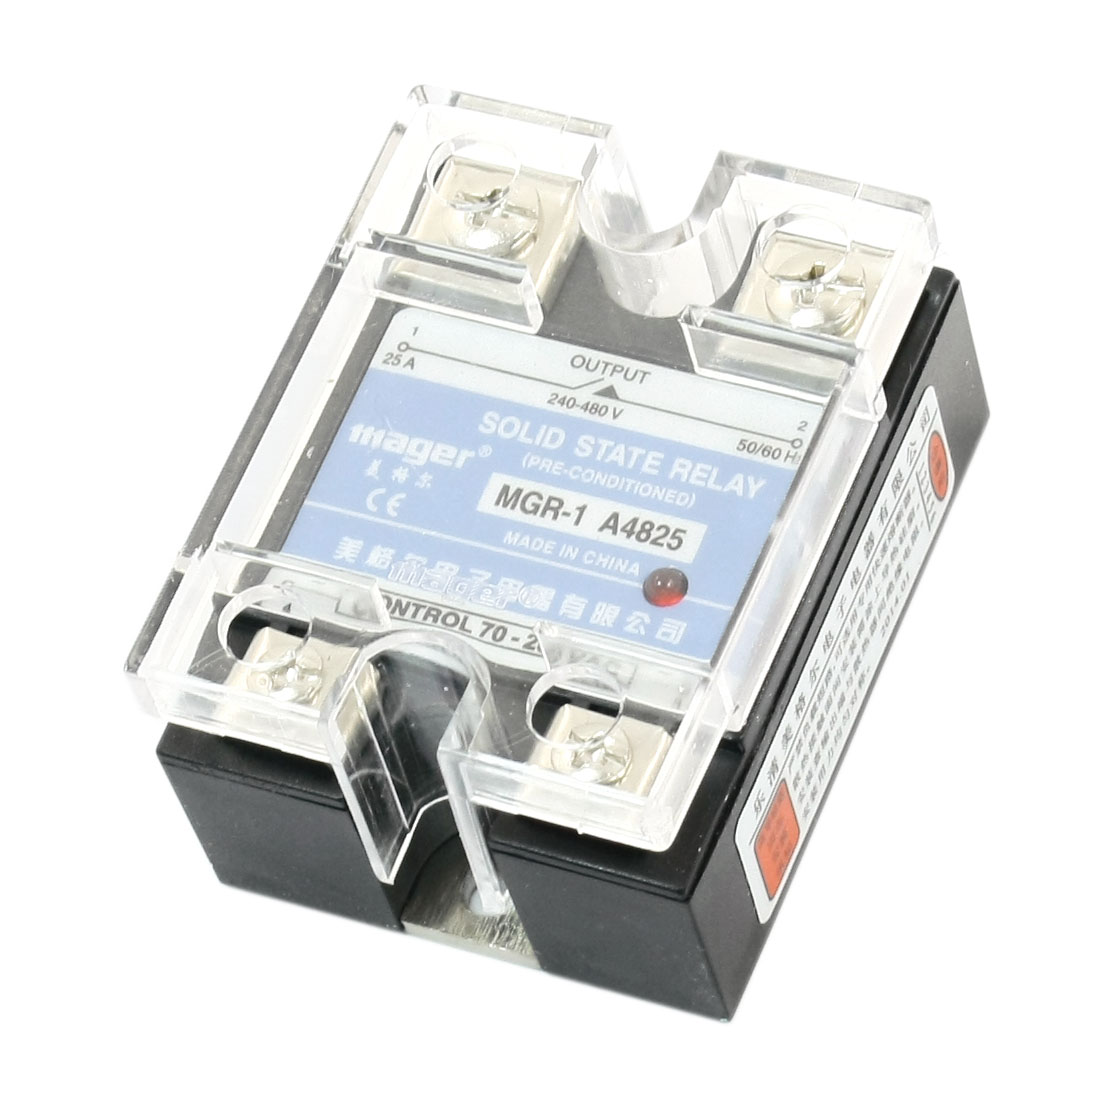 MGR-1 AC-AC AC70-280V AC240-480V 25A 4 Screw Terminal One Phase Clear Plastic Cover SSR Solid State Relay